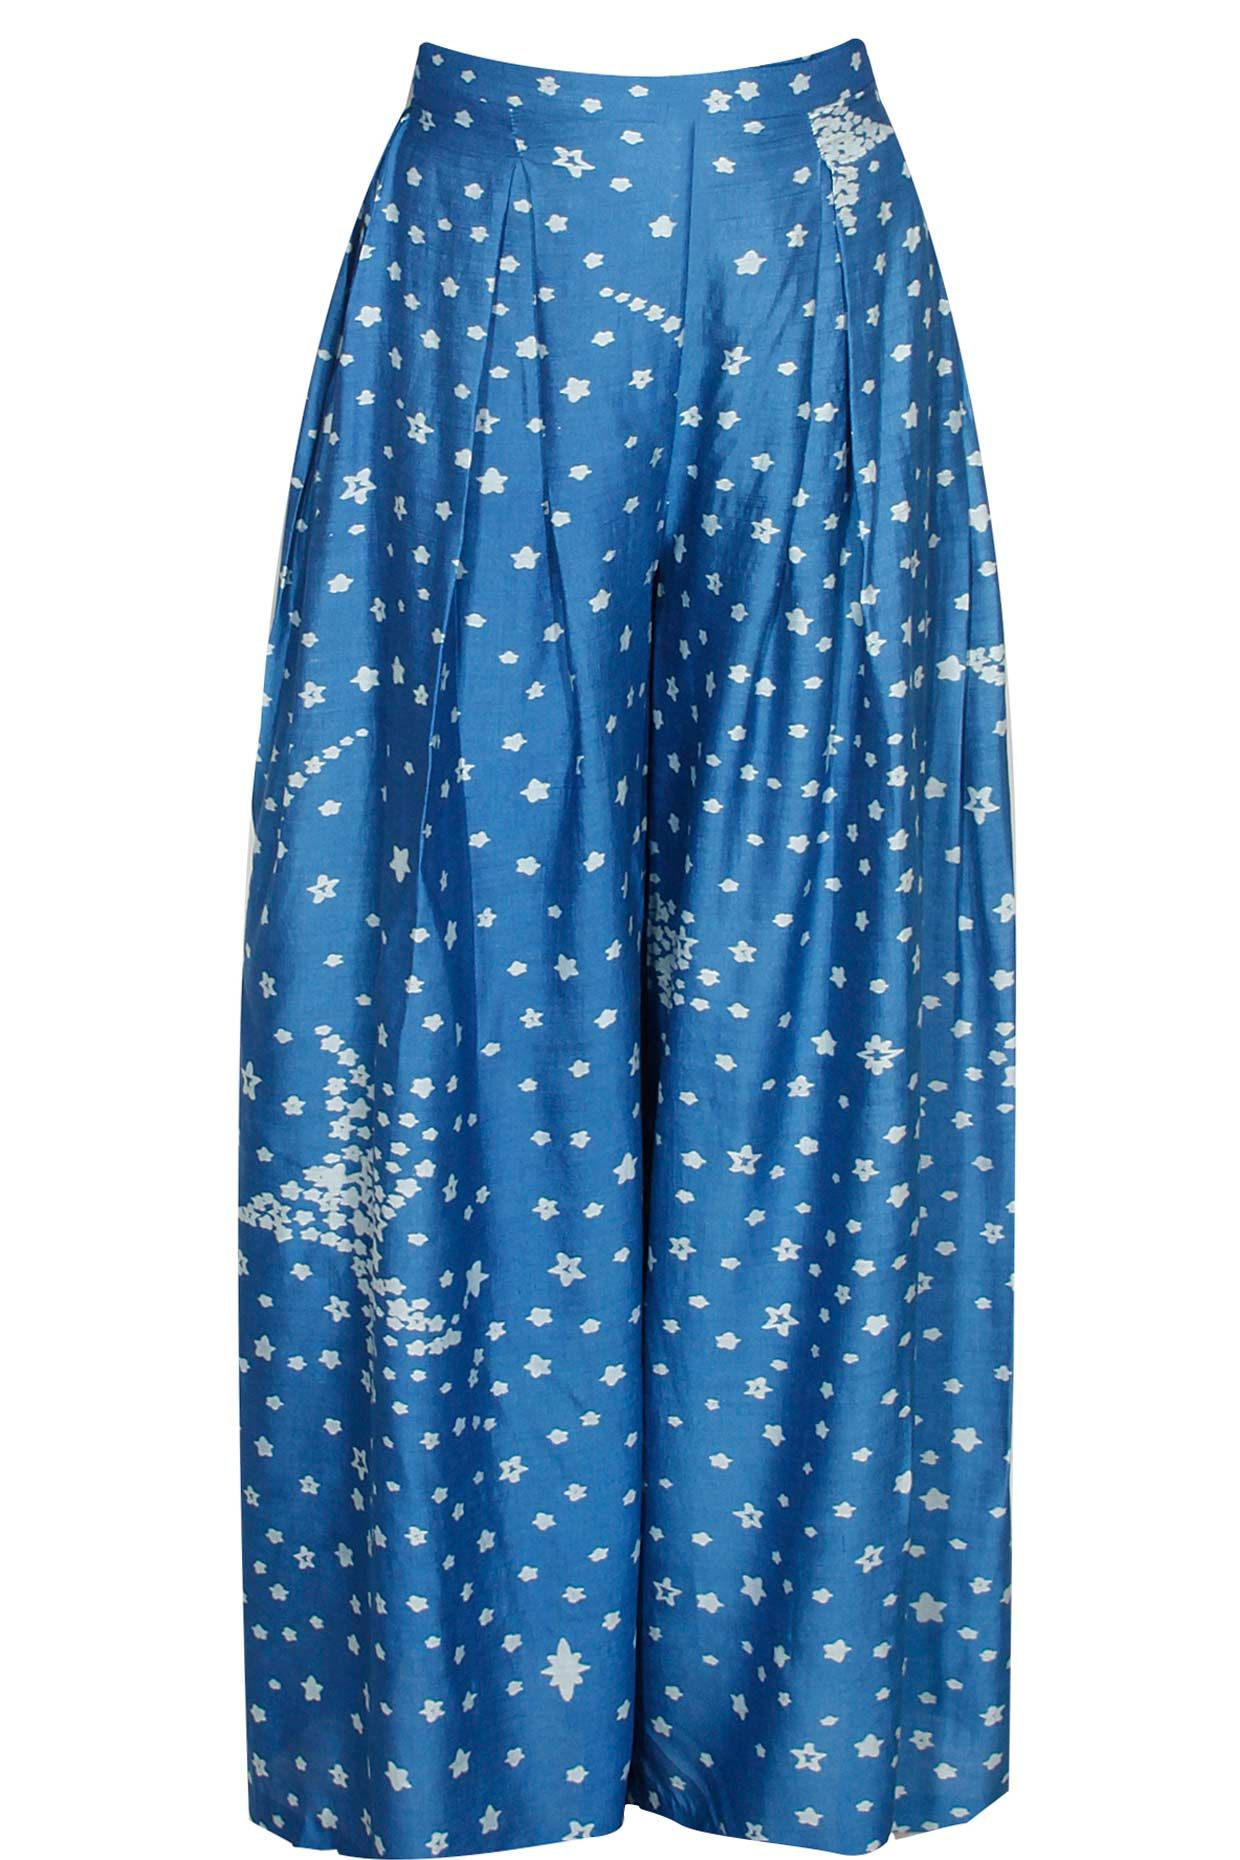 Blue star print pleated palazzos available only at Pernia's Pop-Up Shop.